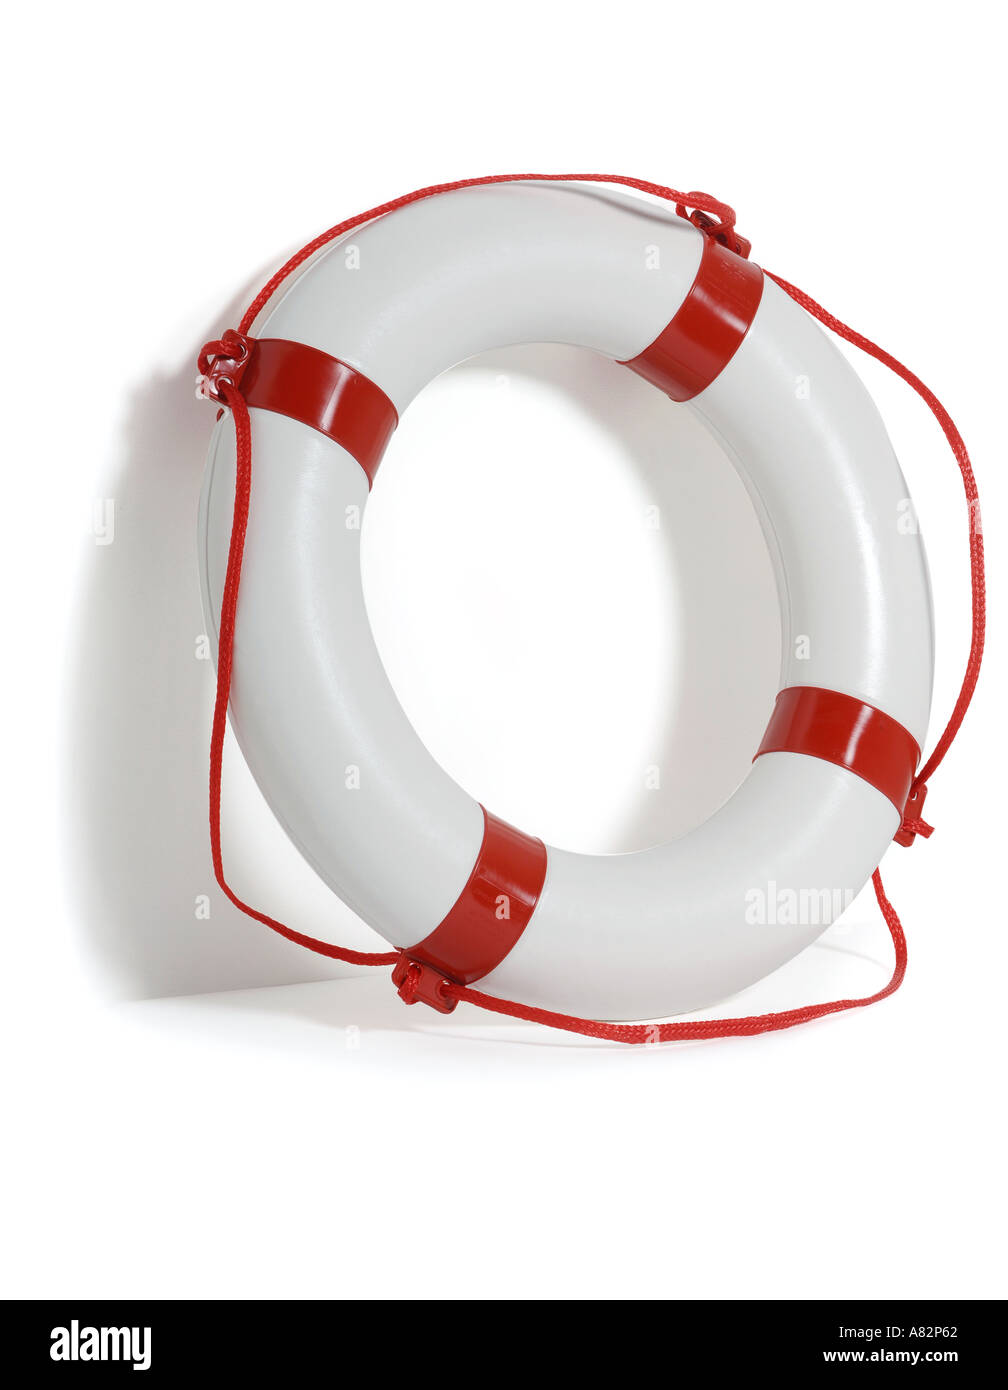 Red and white life ring against white background with shadow